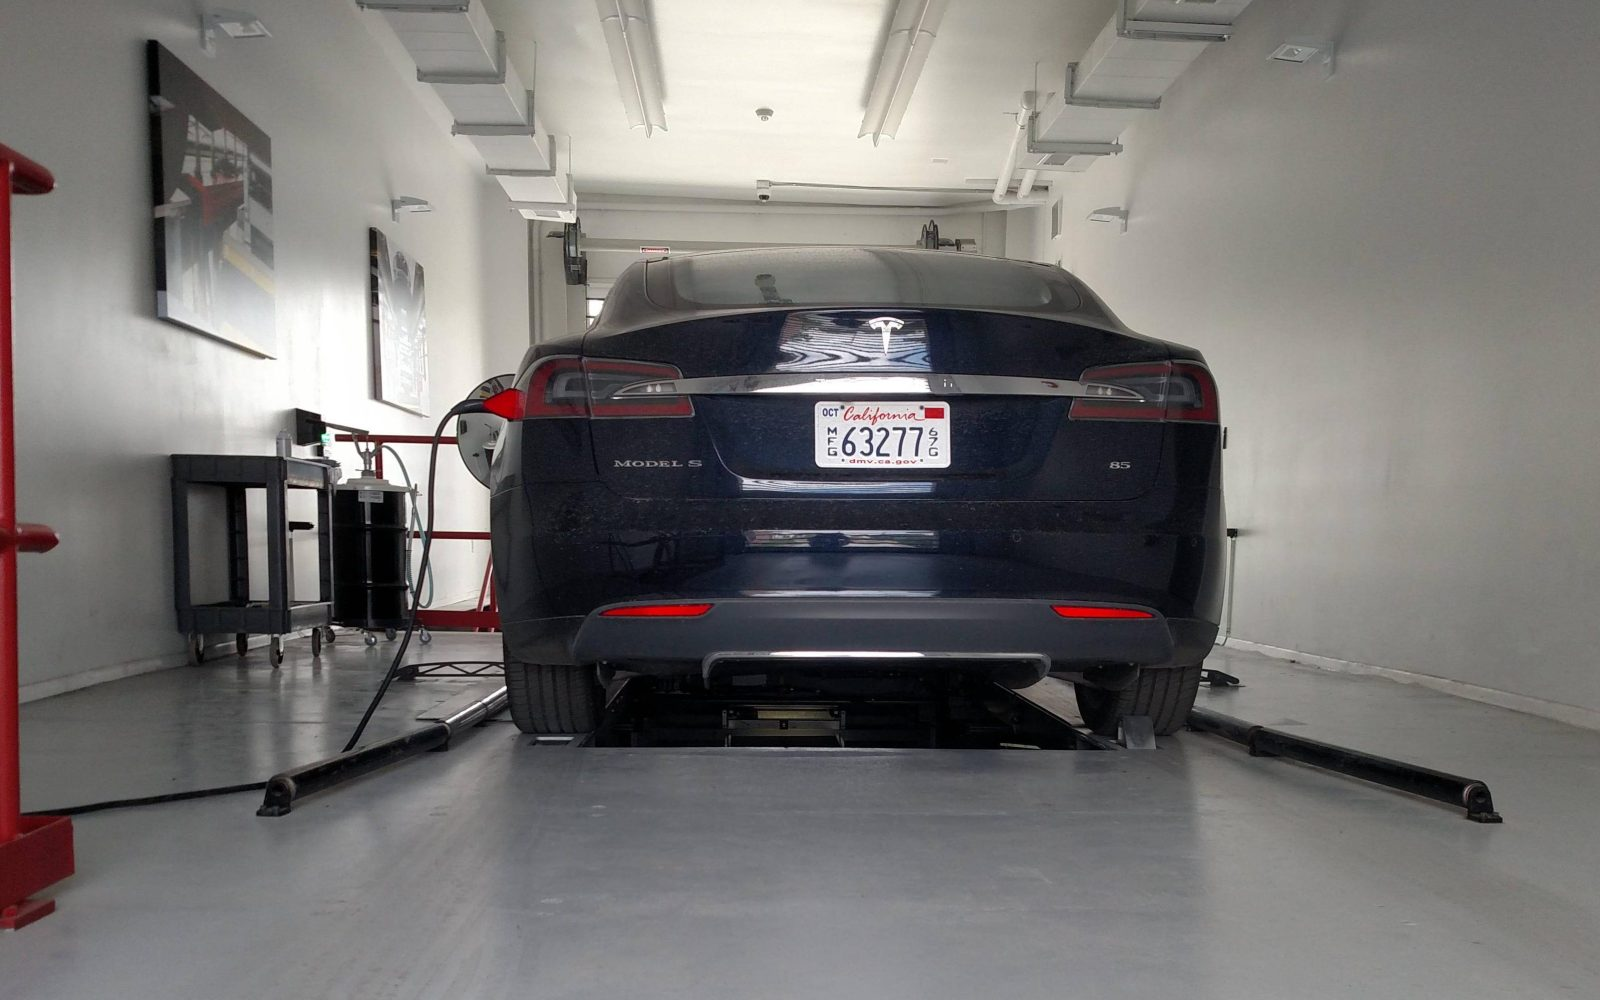 Tesla is committed to its Supercharger network, but the battery swap